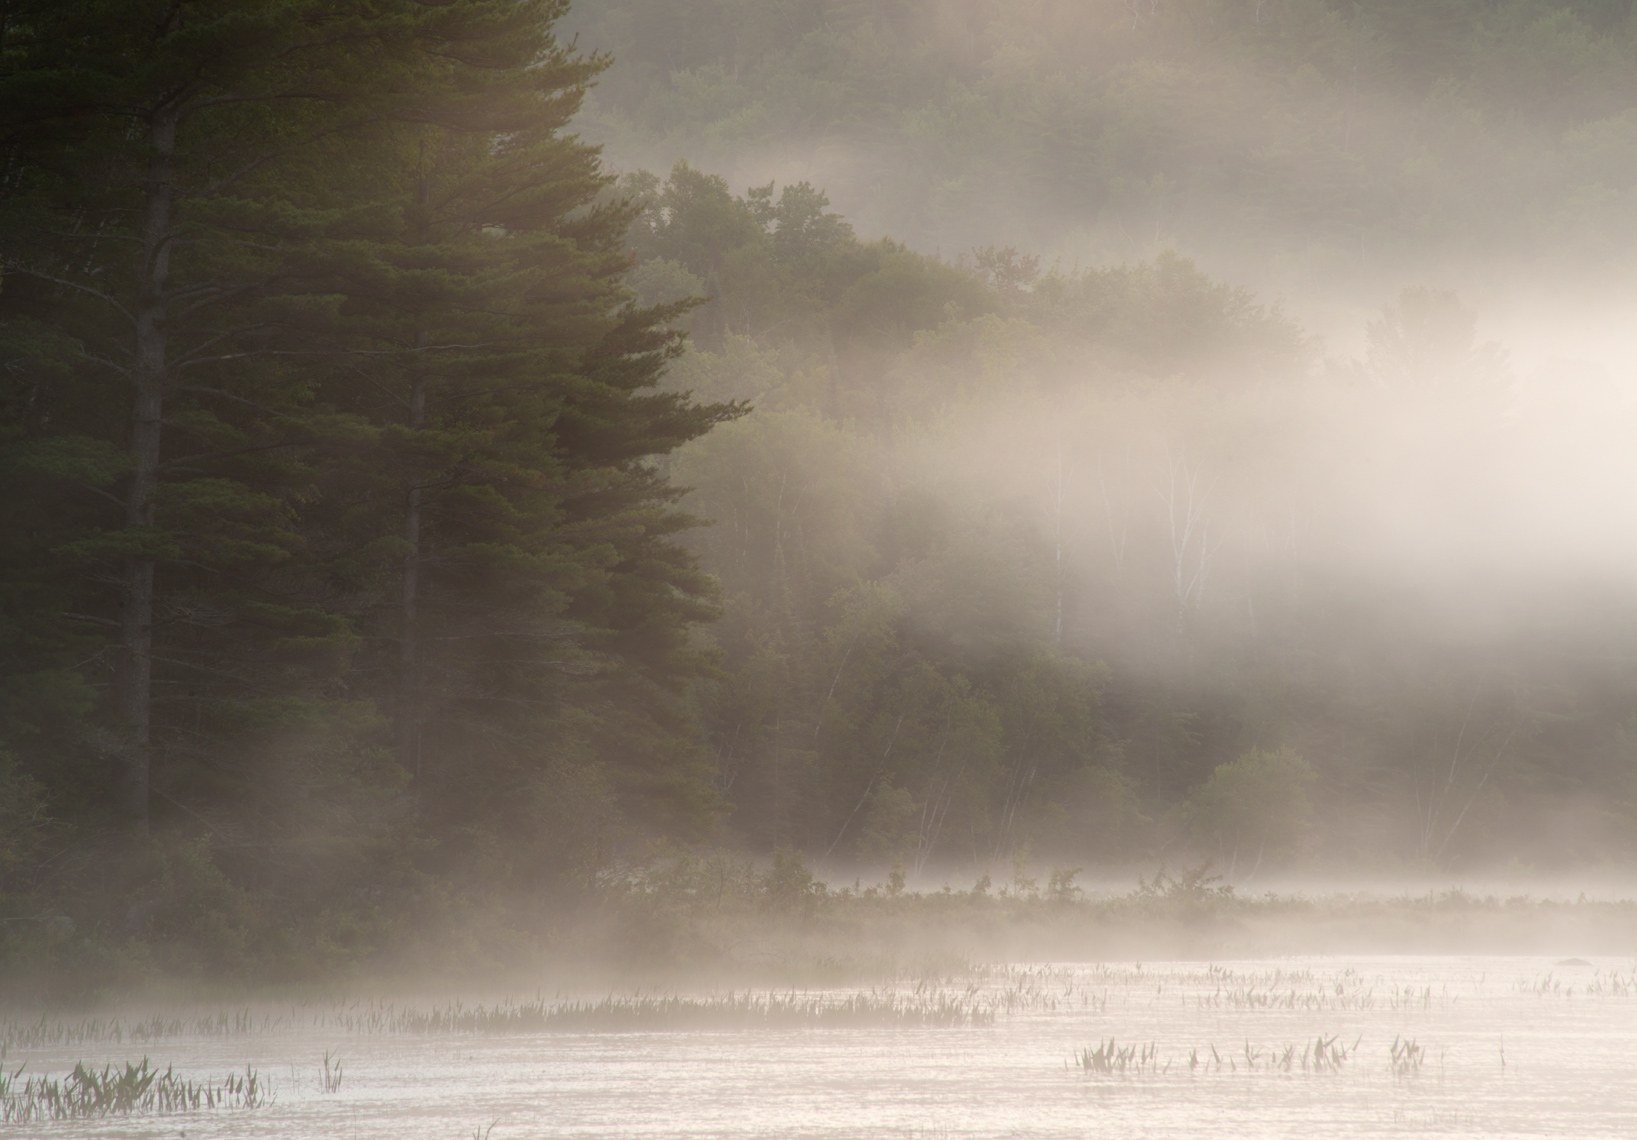 Morning Mist on Cod Pond, Adirondack Mountains, New York State